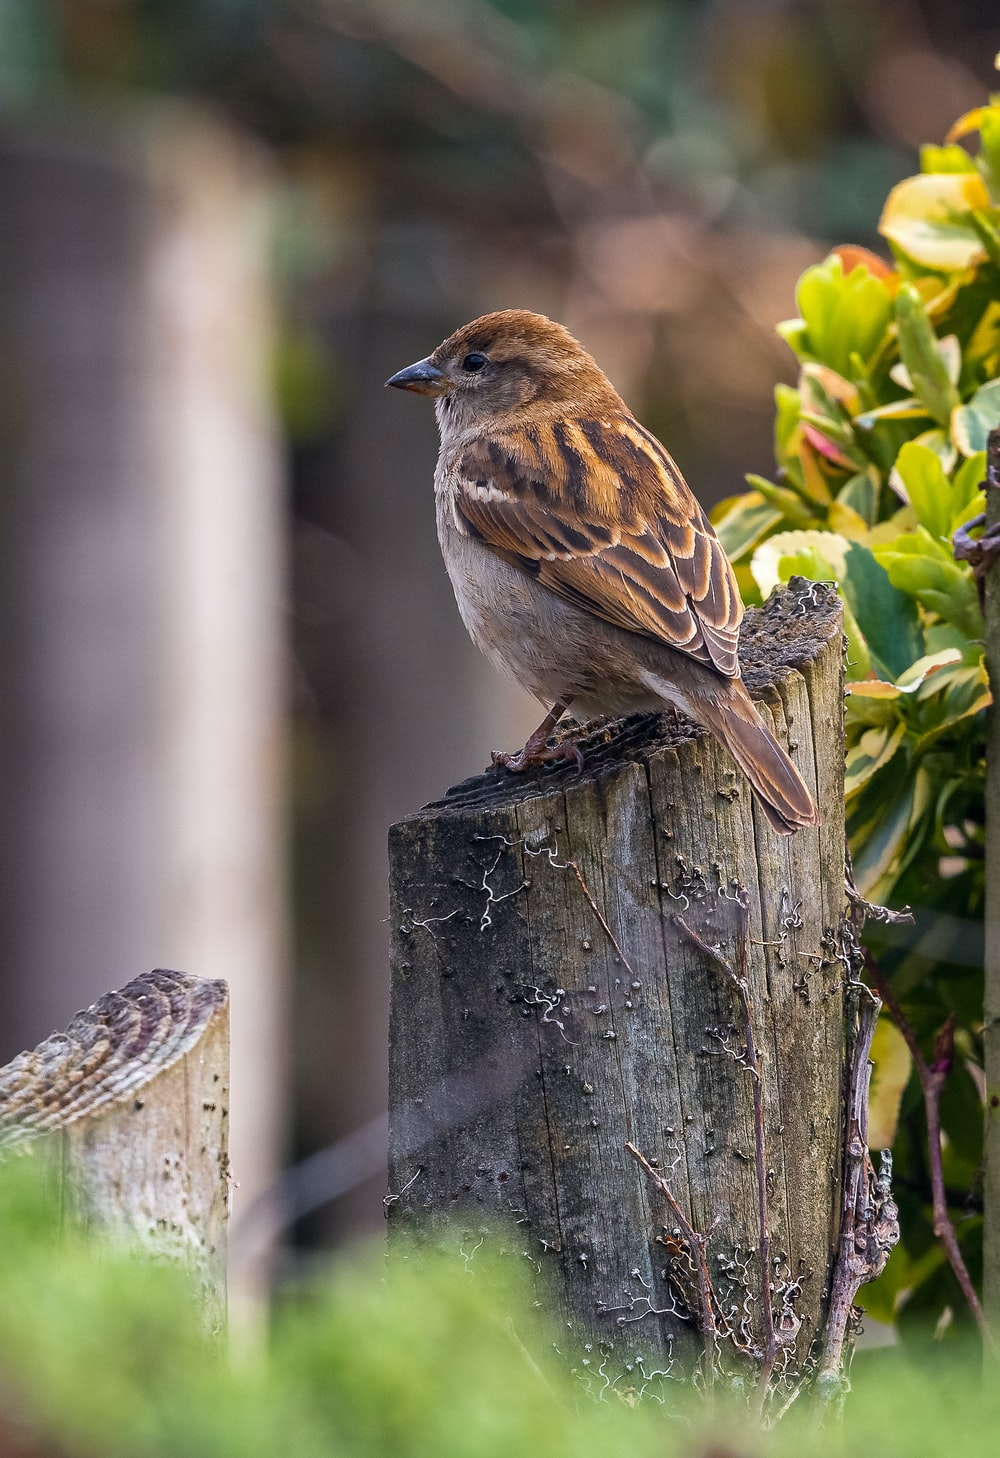 brown bird in a wood near a plant during daytime close-up photography